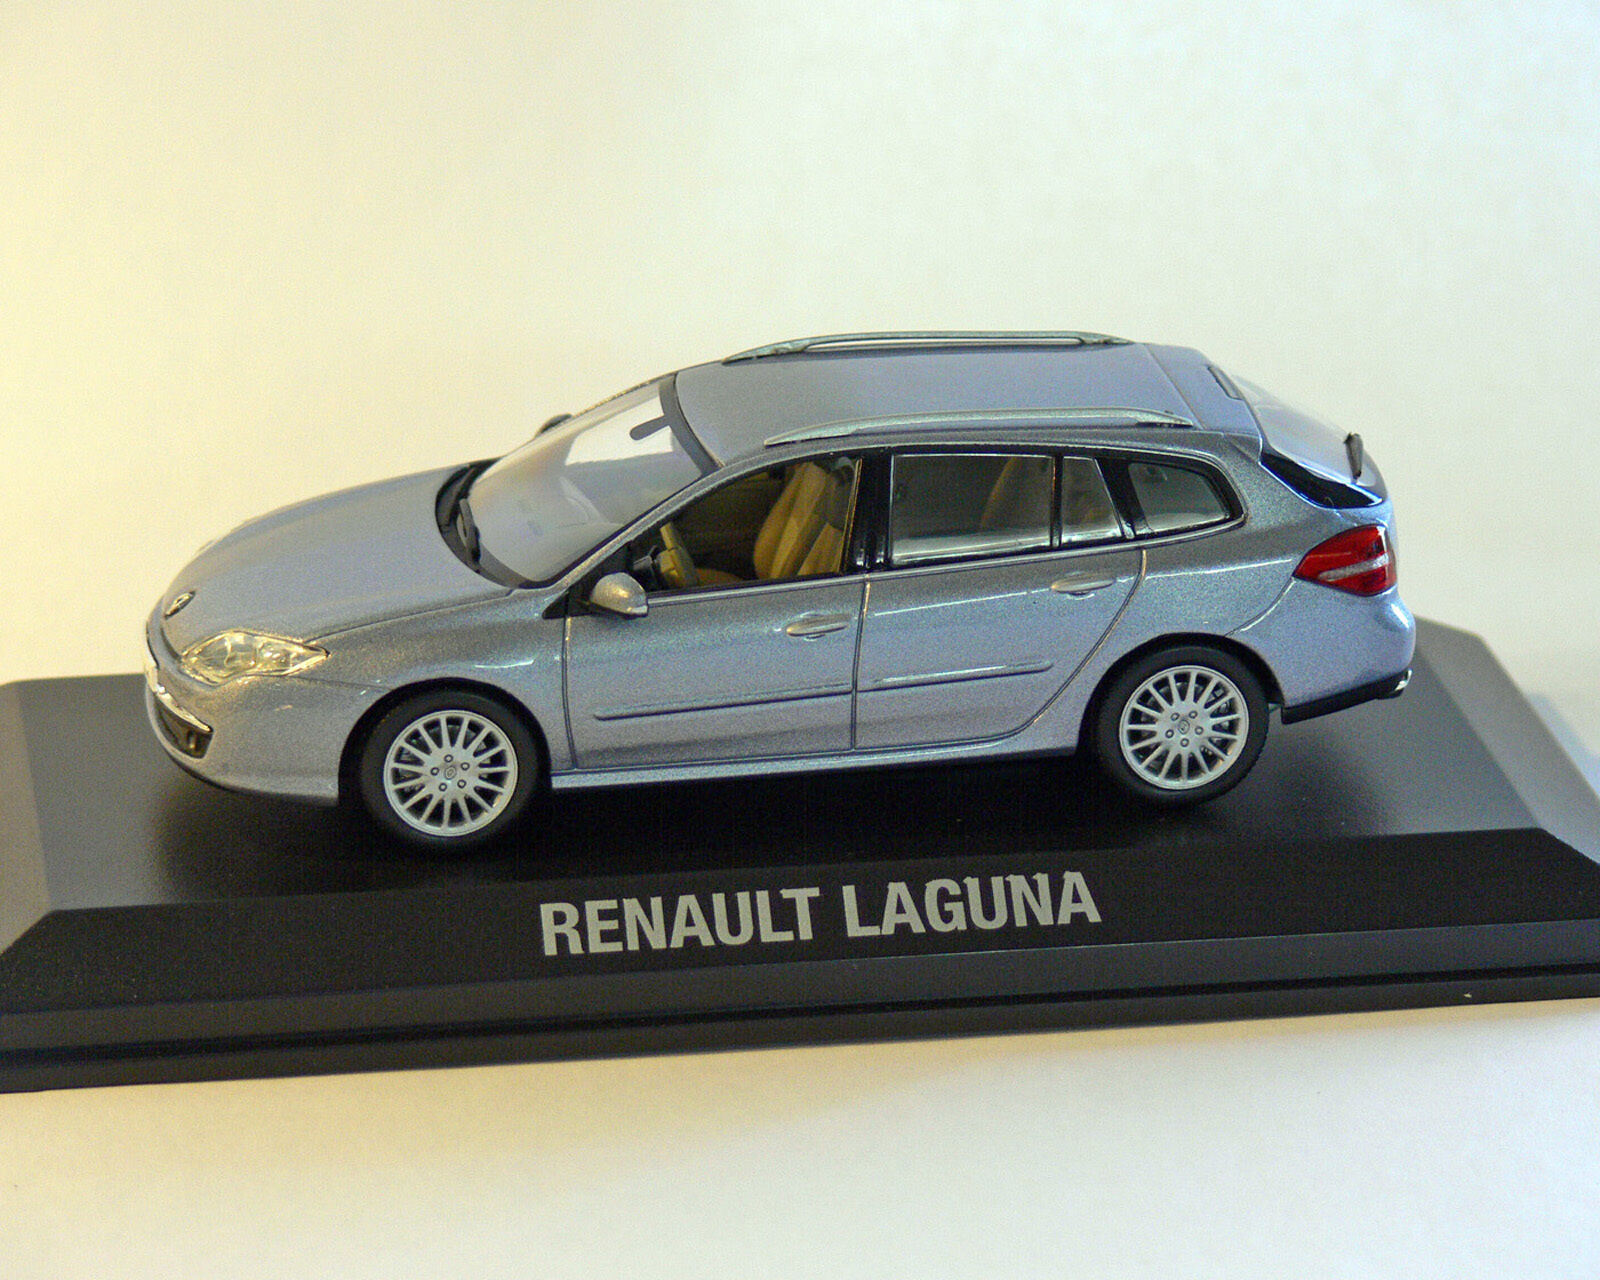 Renault Laguna Estate 2007, Light bluee, Norev 1 43